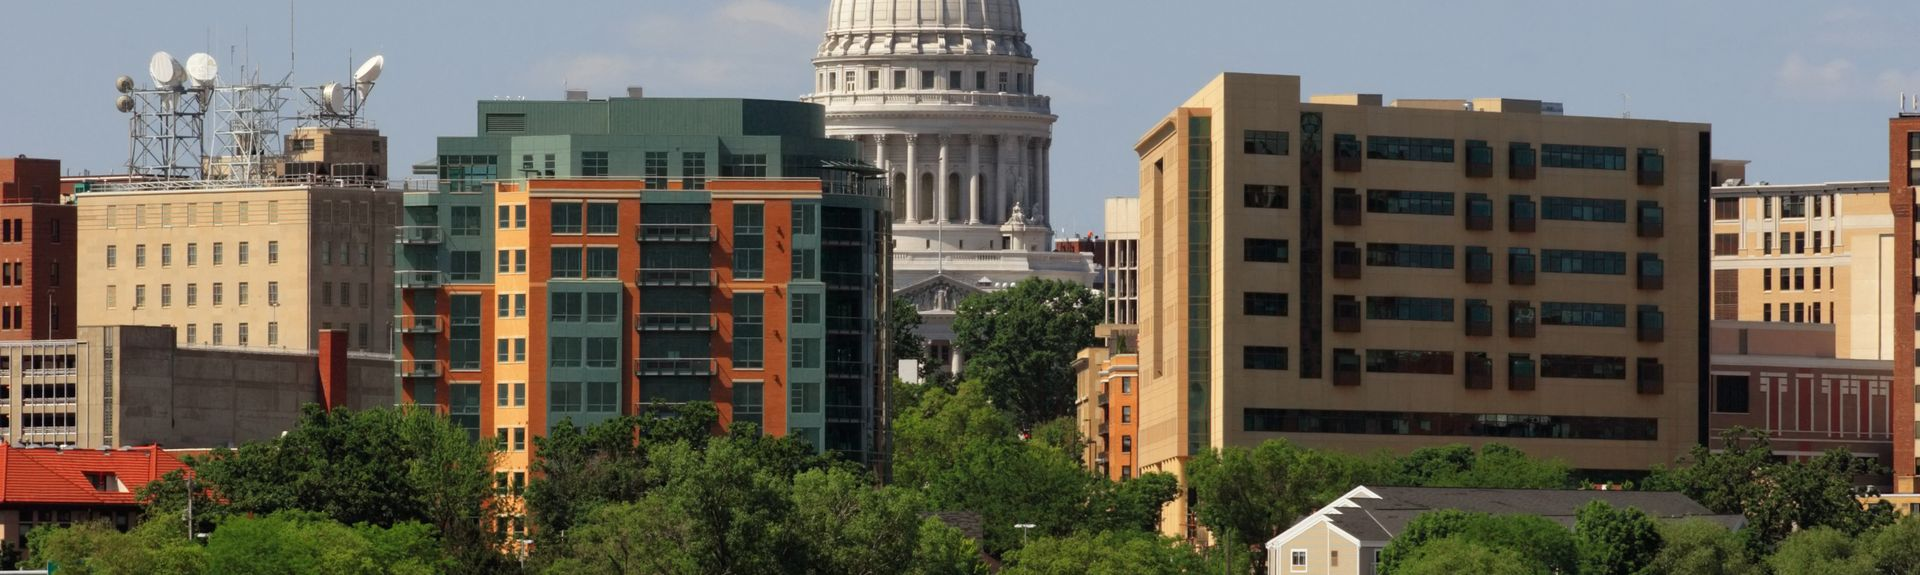 Madison, Wisconsin, Estados Unidos